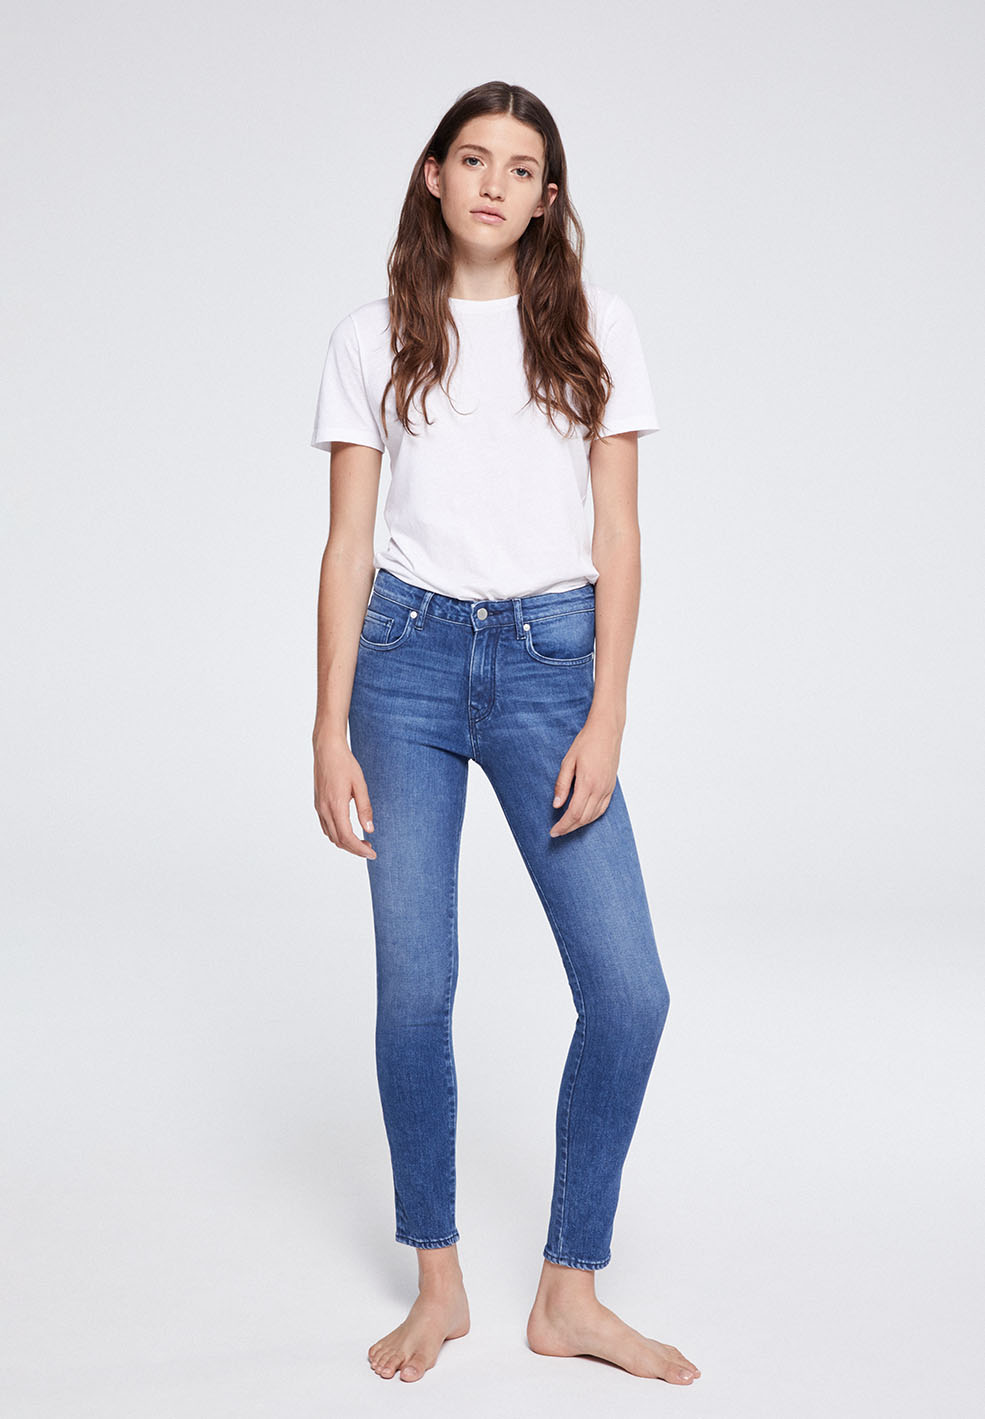 Armedangel, sustainable jeans